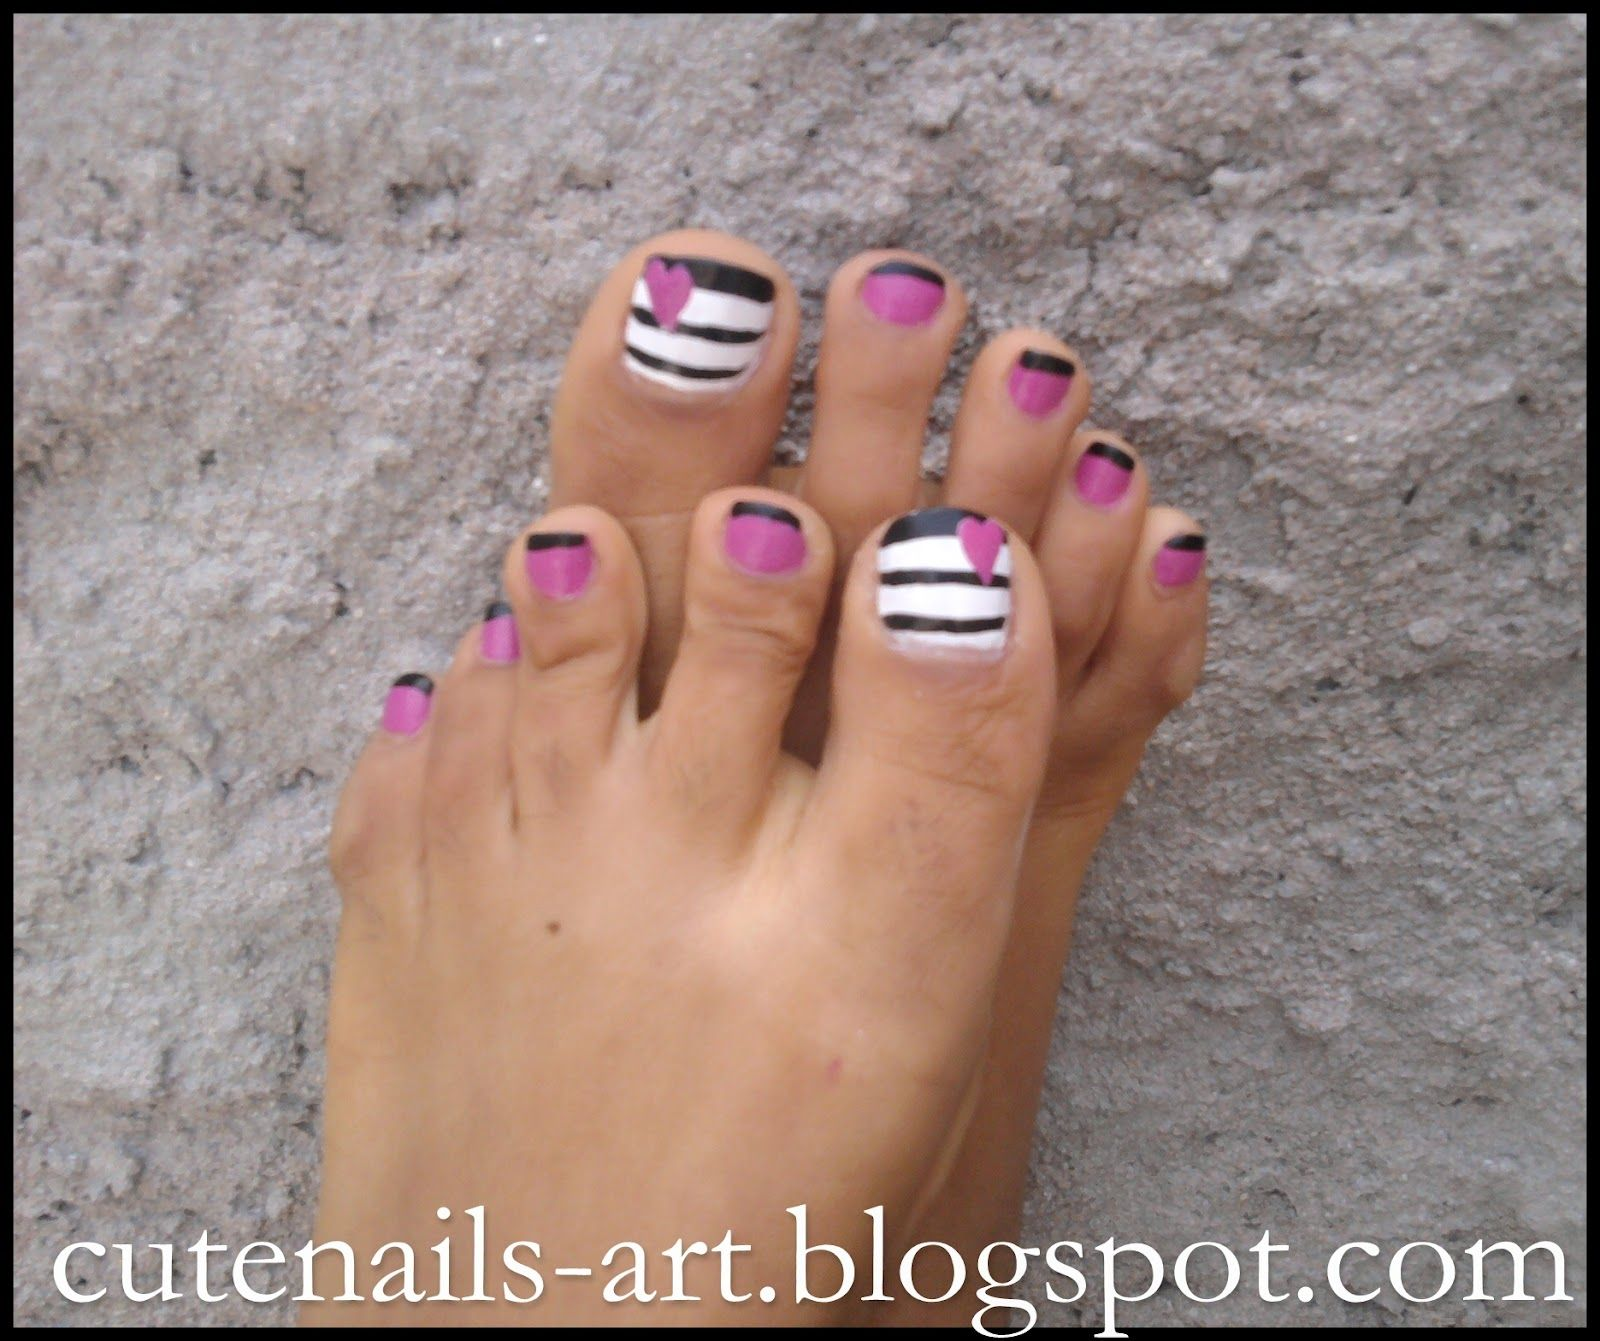 Pedicure Nail Art | maroc-cutenails-art: 4 summer pedicures,easy ...